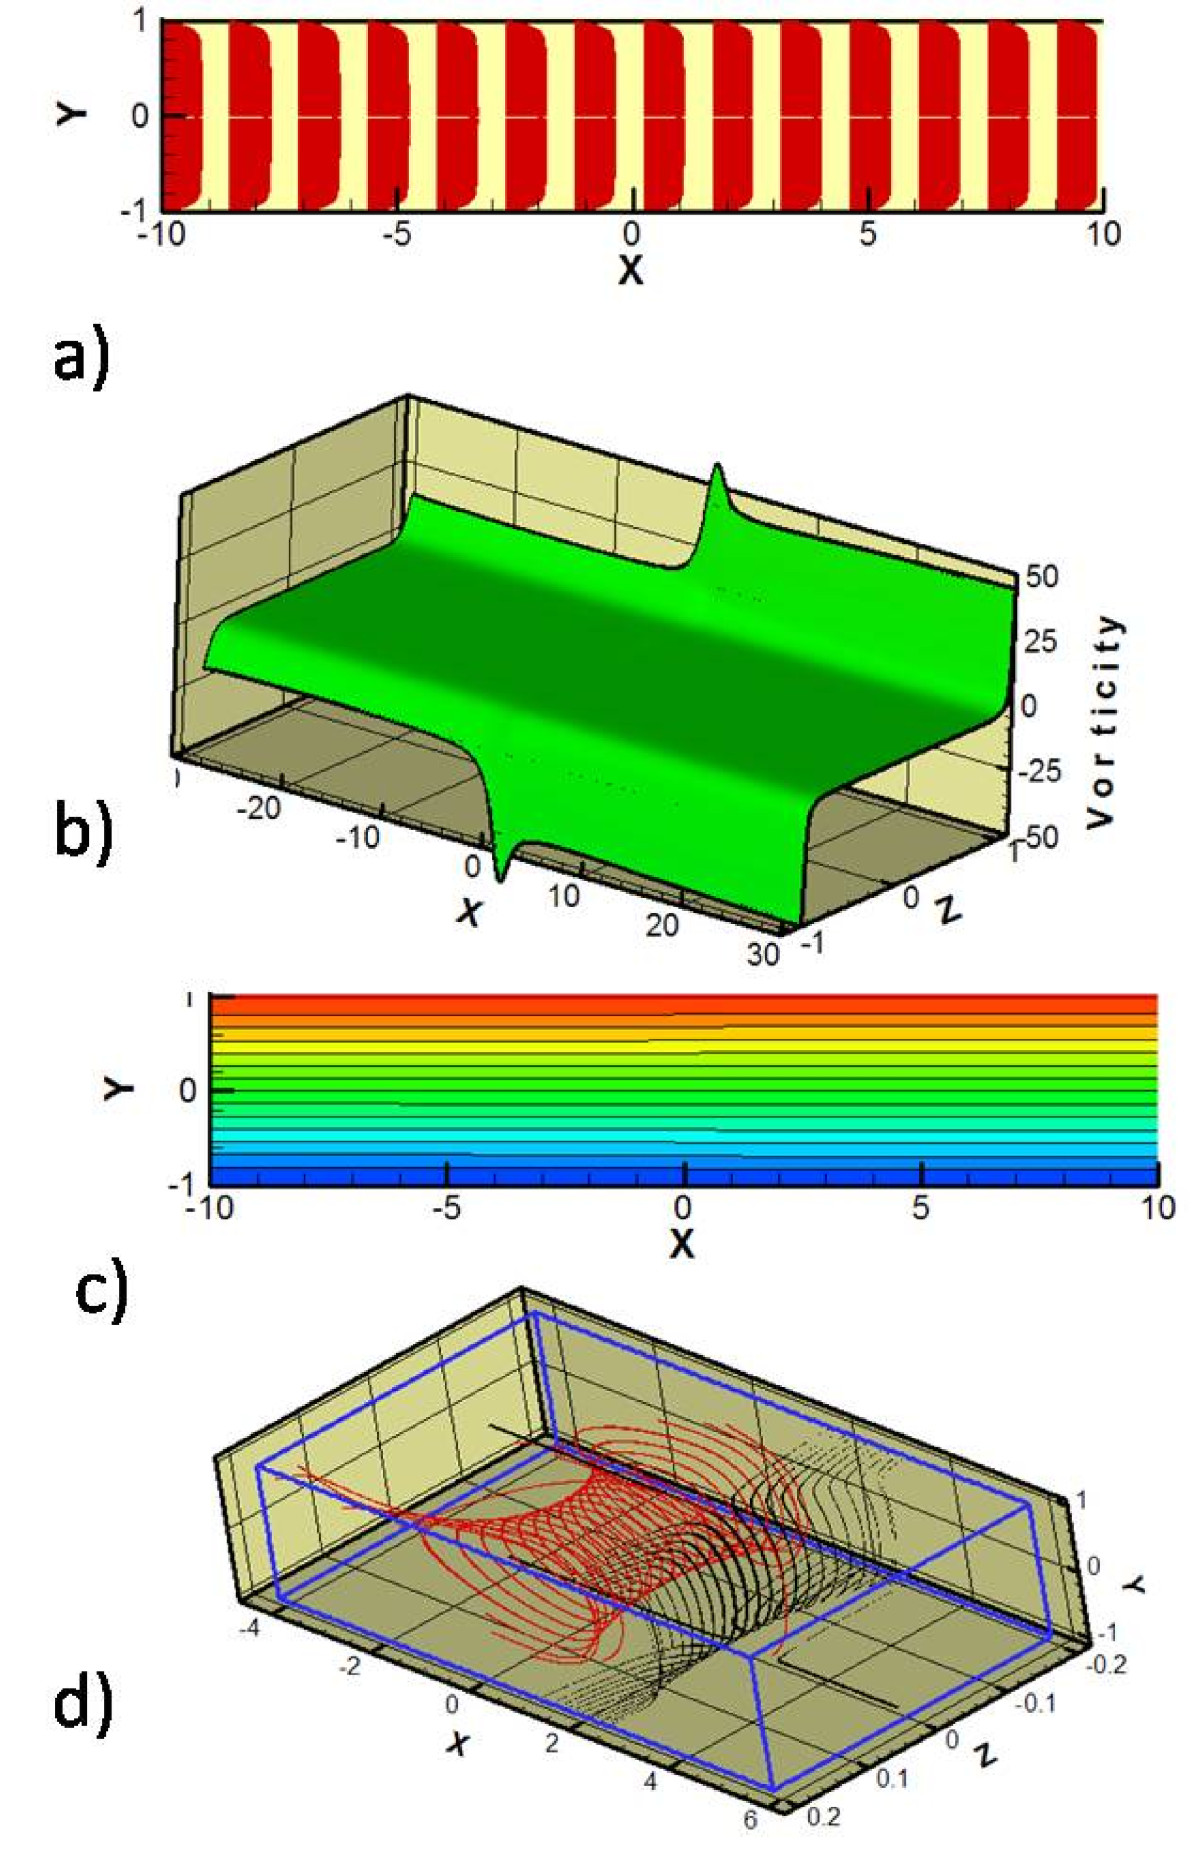 http://static-content.springer.com/image/art%3A10.1186%2F1754-0429-3-3/MediaObjects/13067_2010_Article_26_Fig7_HTML.jpg